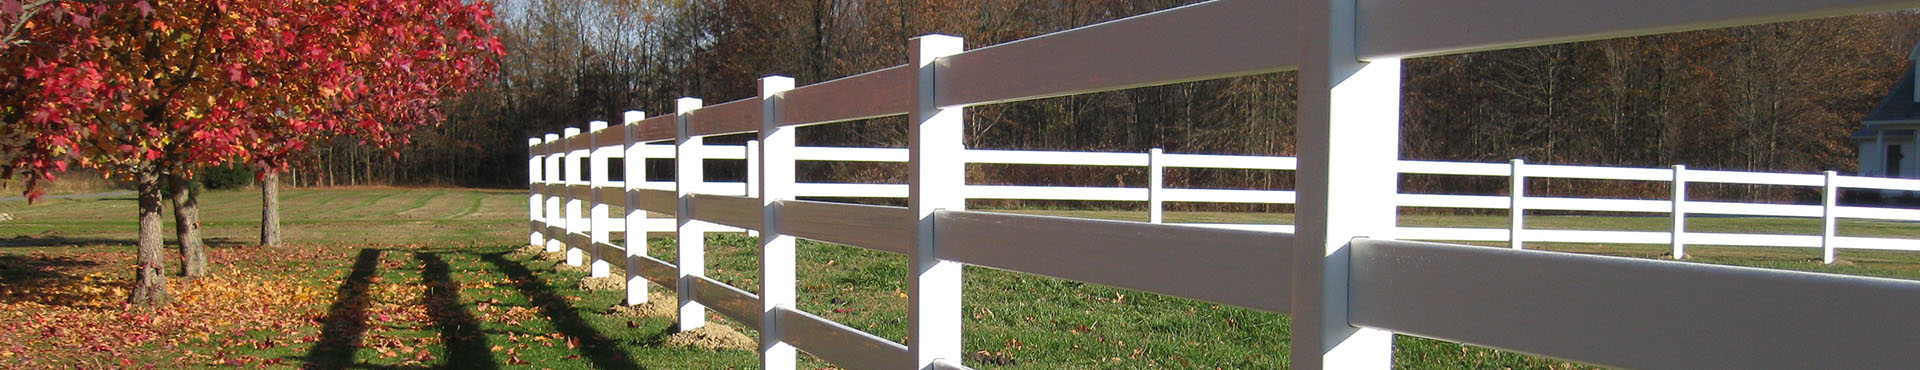 Vinyl Post and Rail Fencing